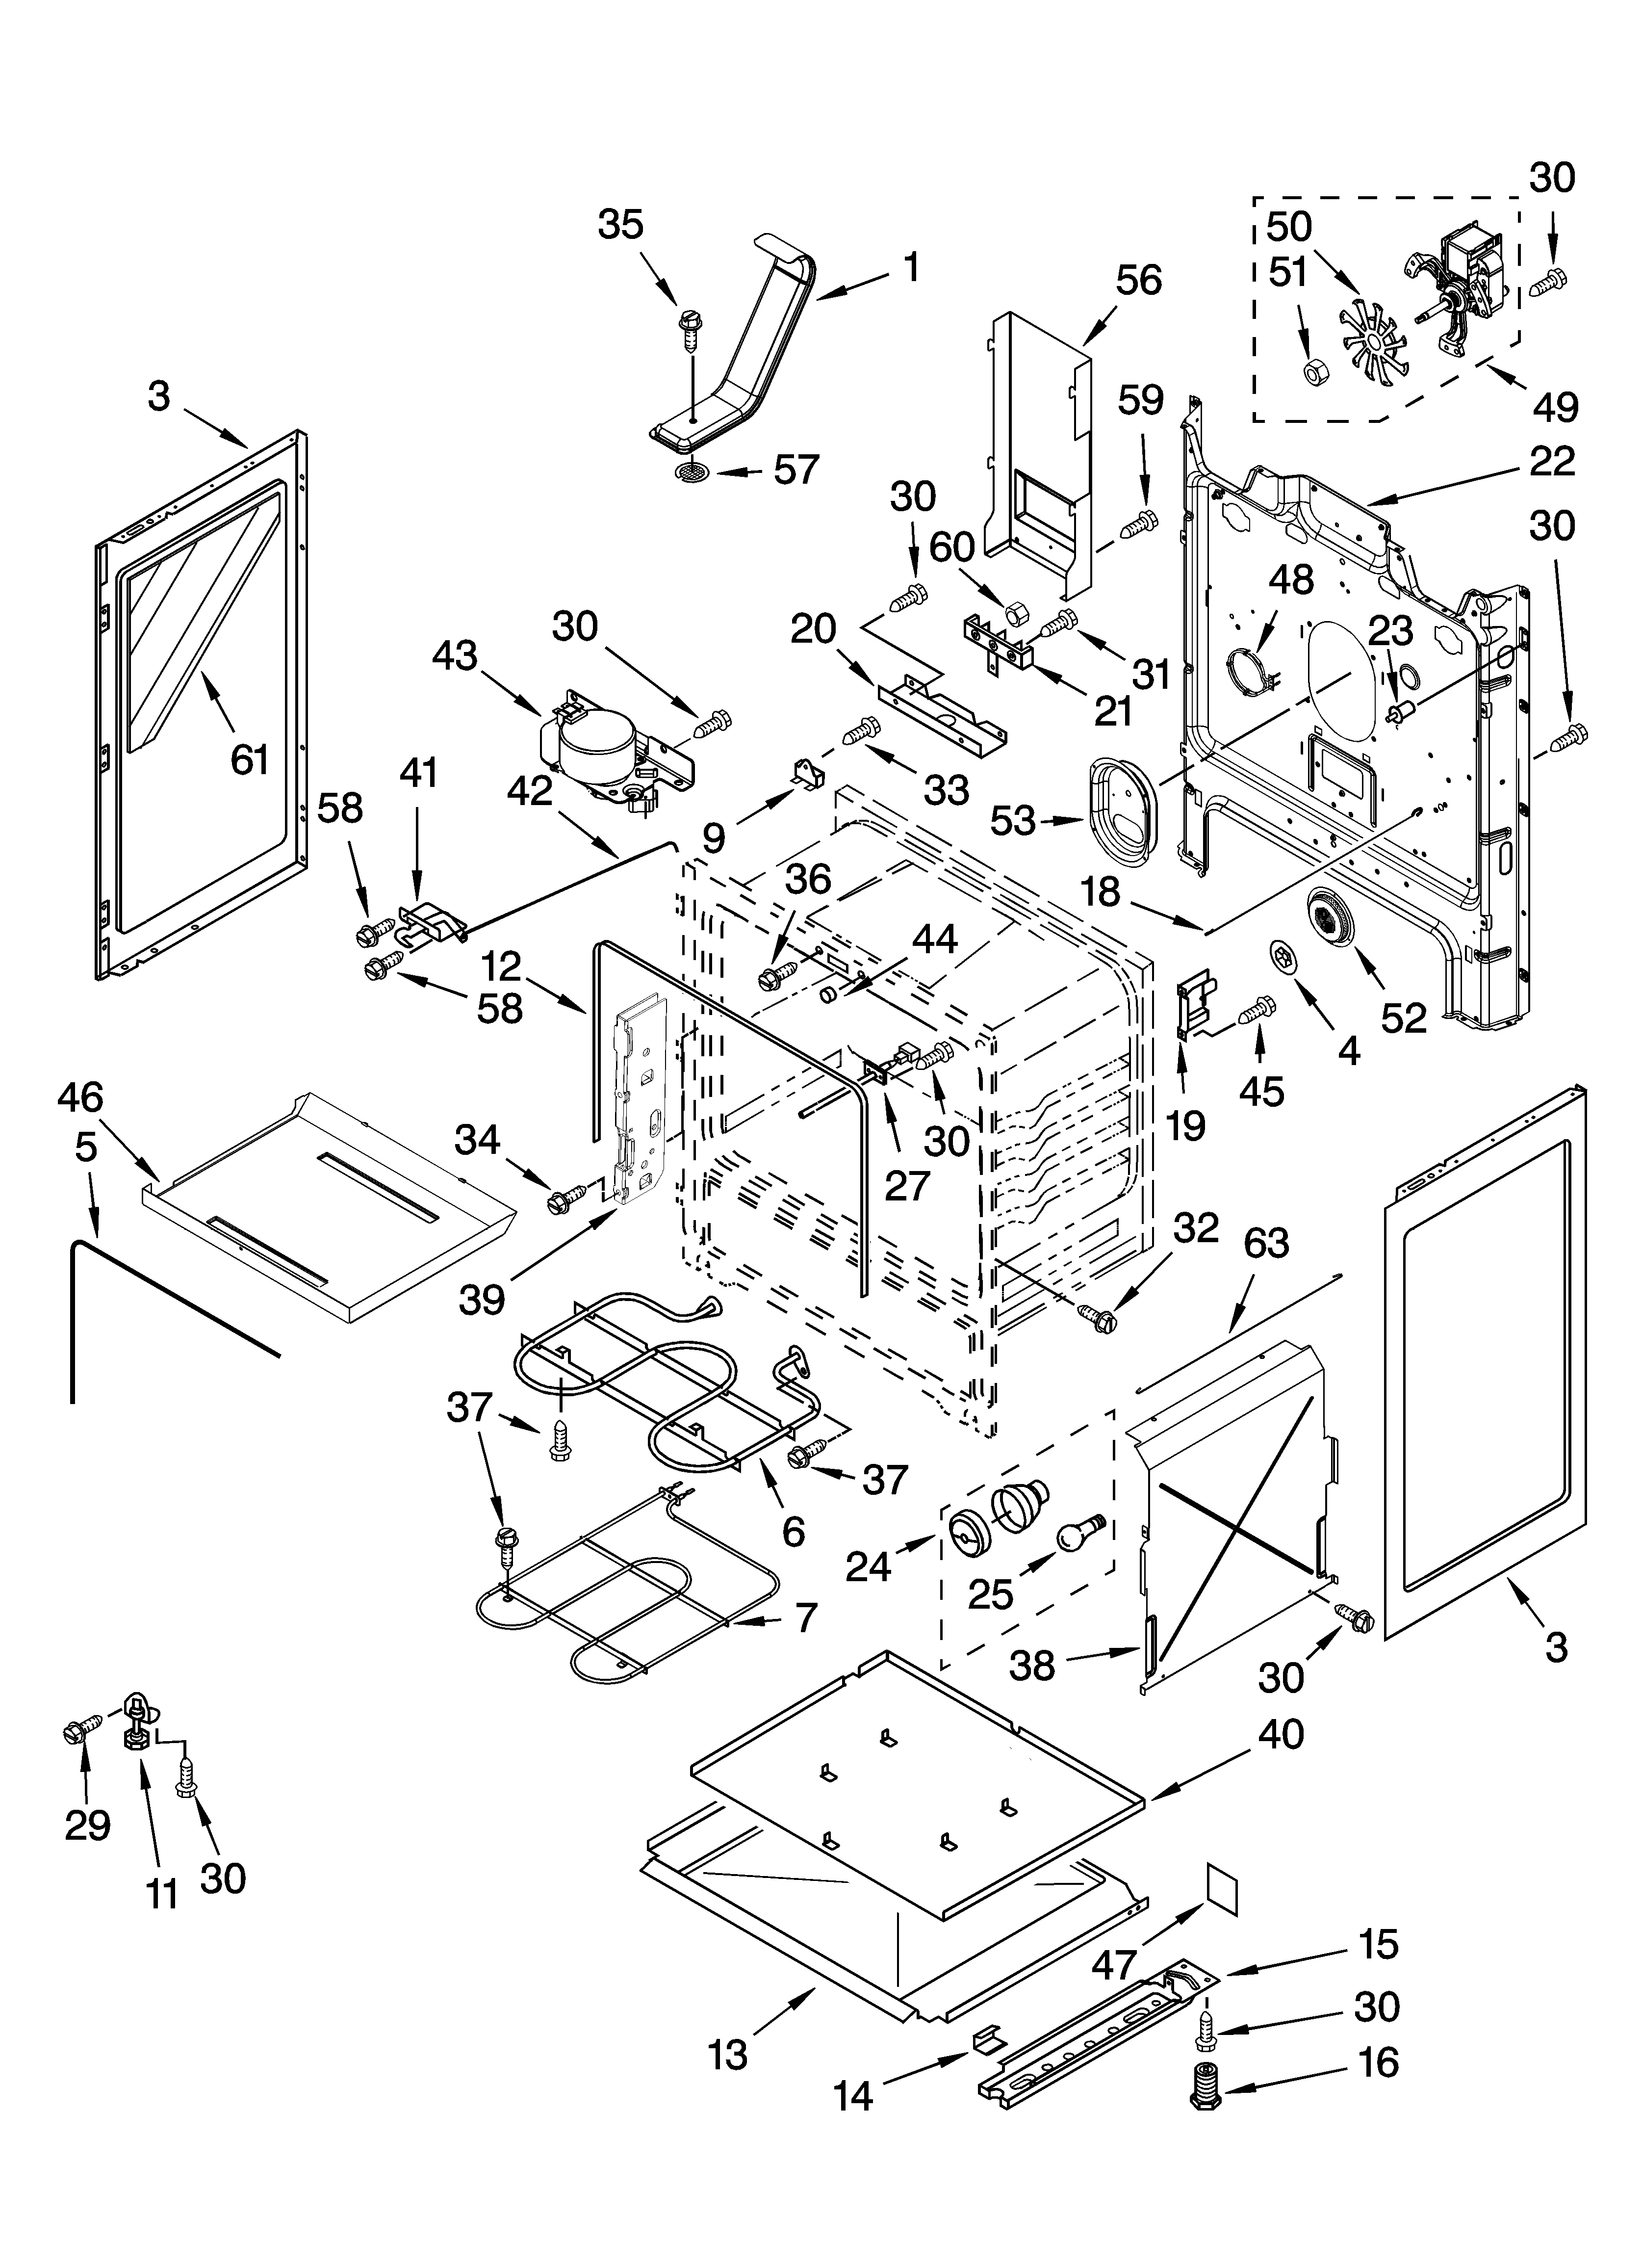 Whirlpool GFE471LVB0 chassis parts diagram